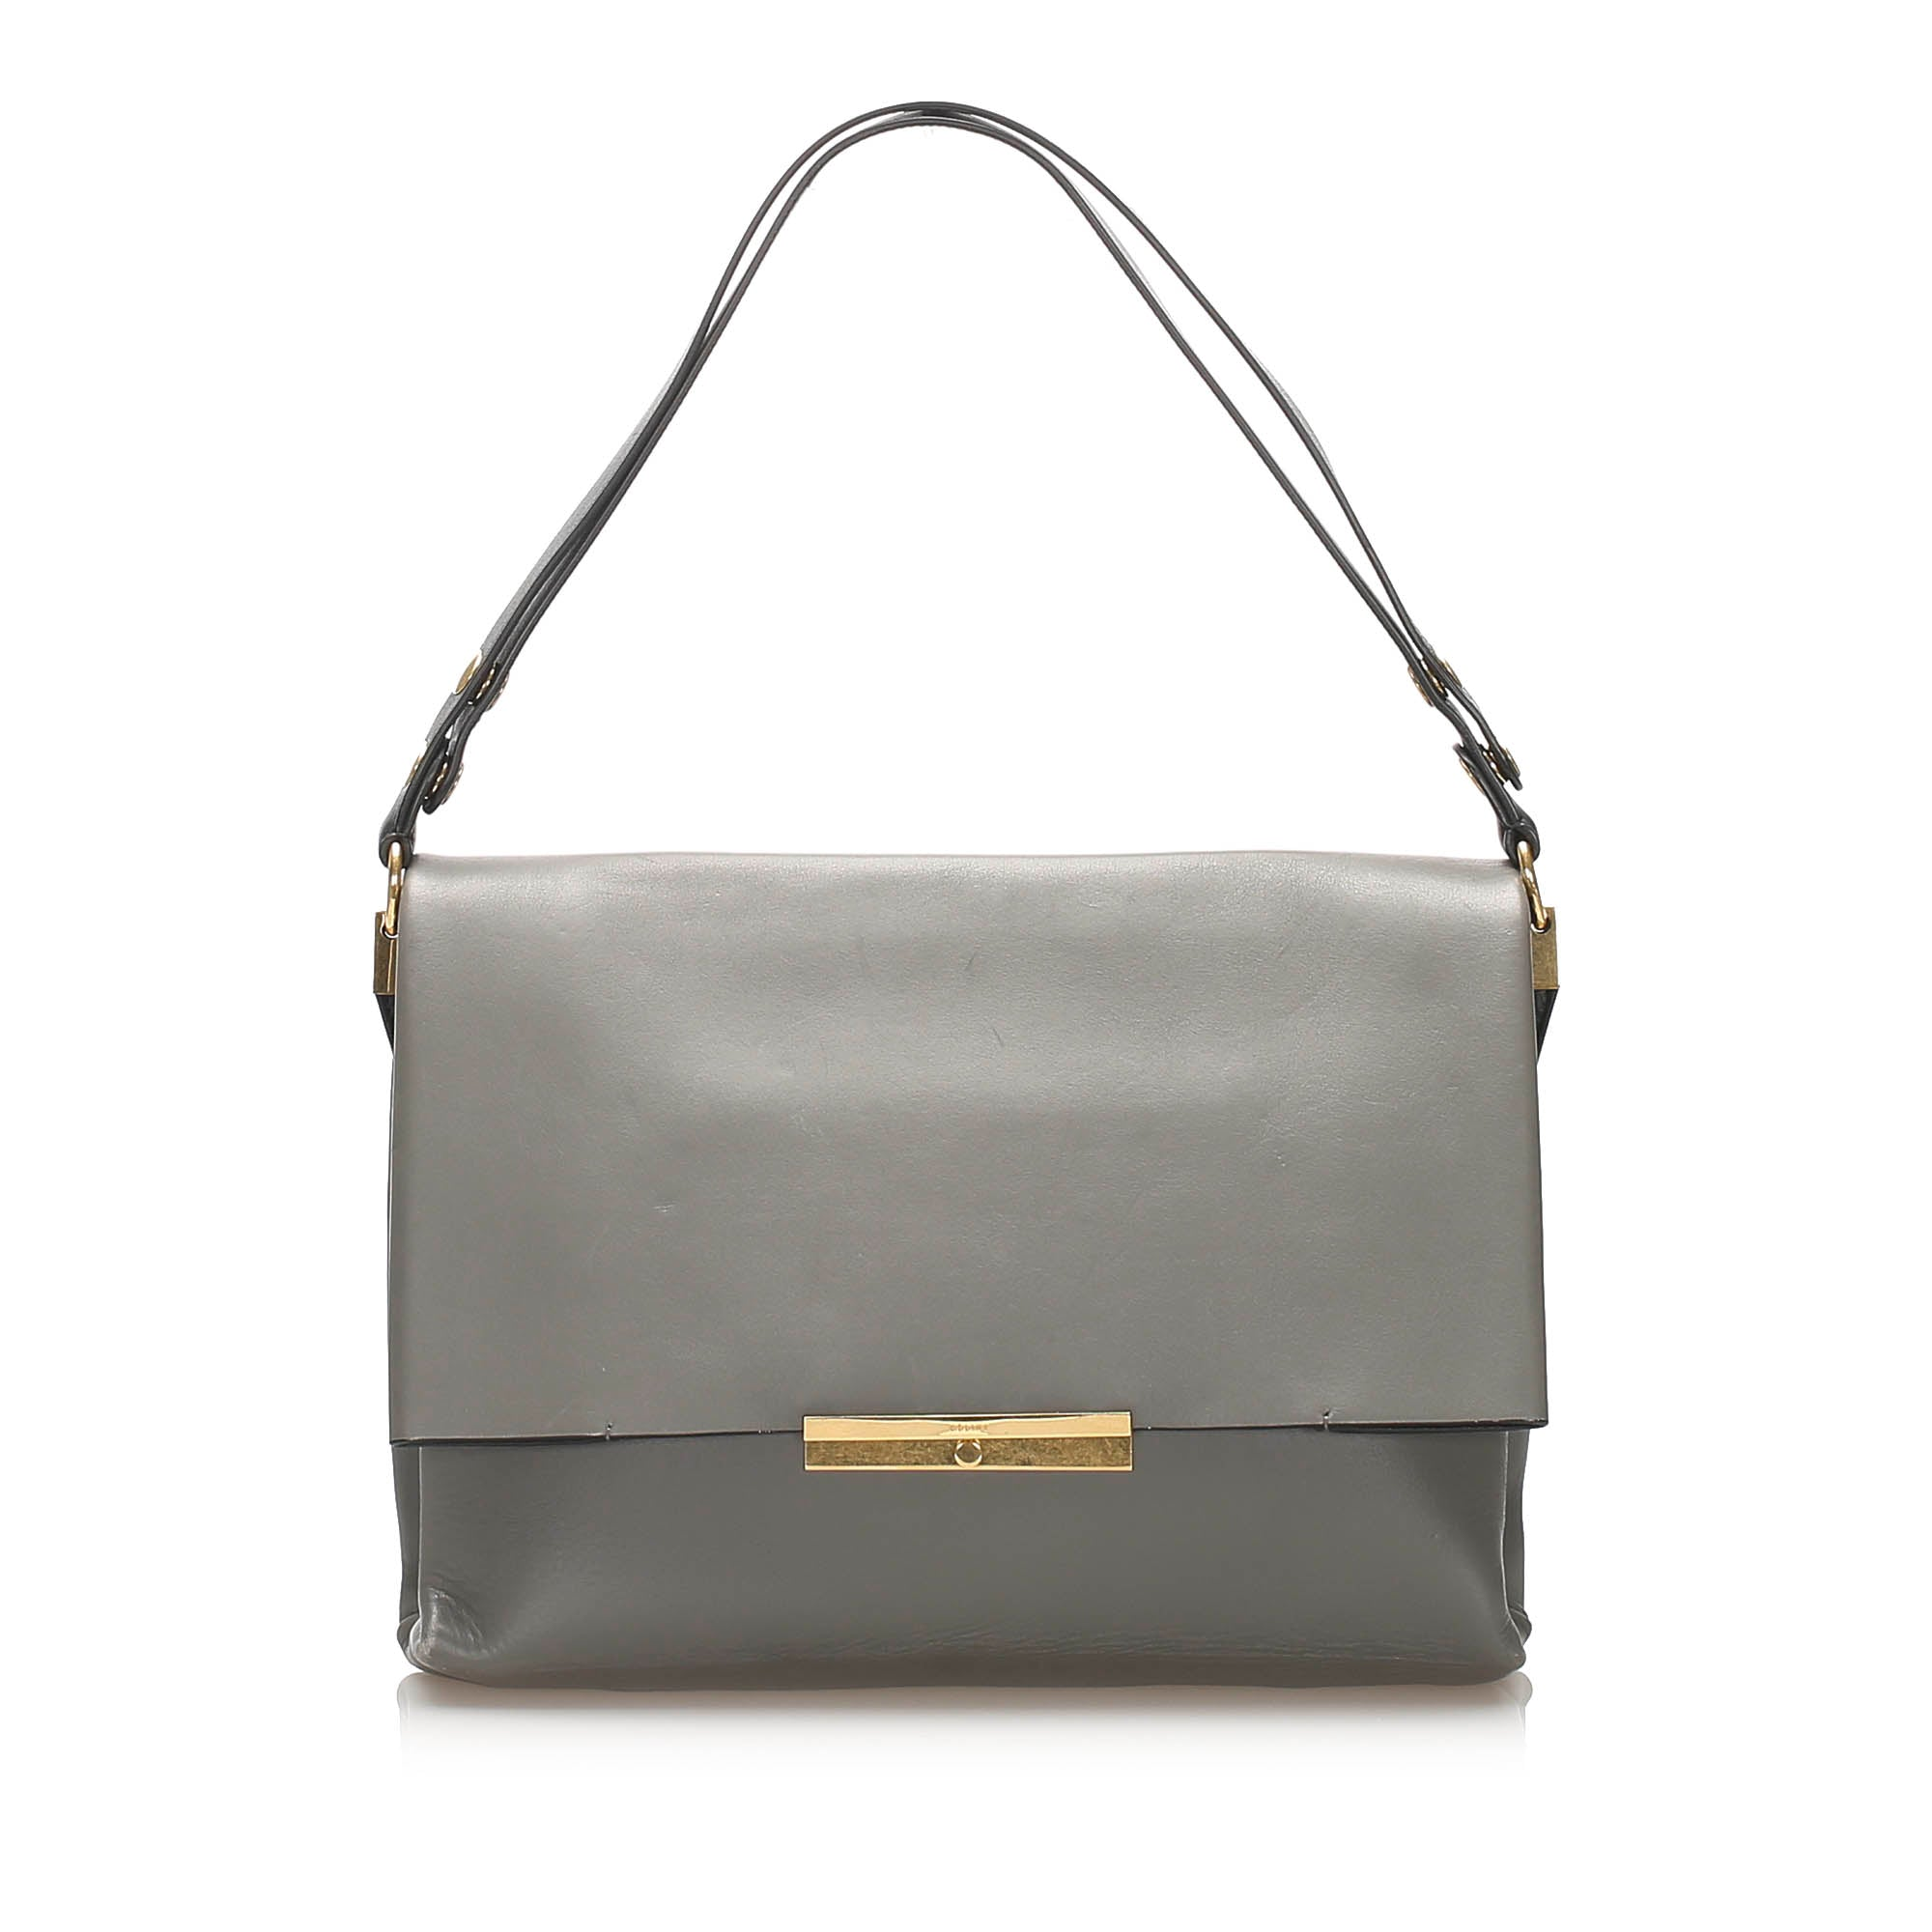 Celine Gray Blade Leather Shoulder Bag